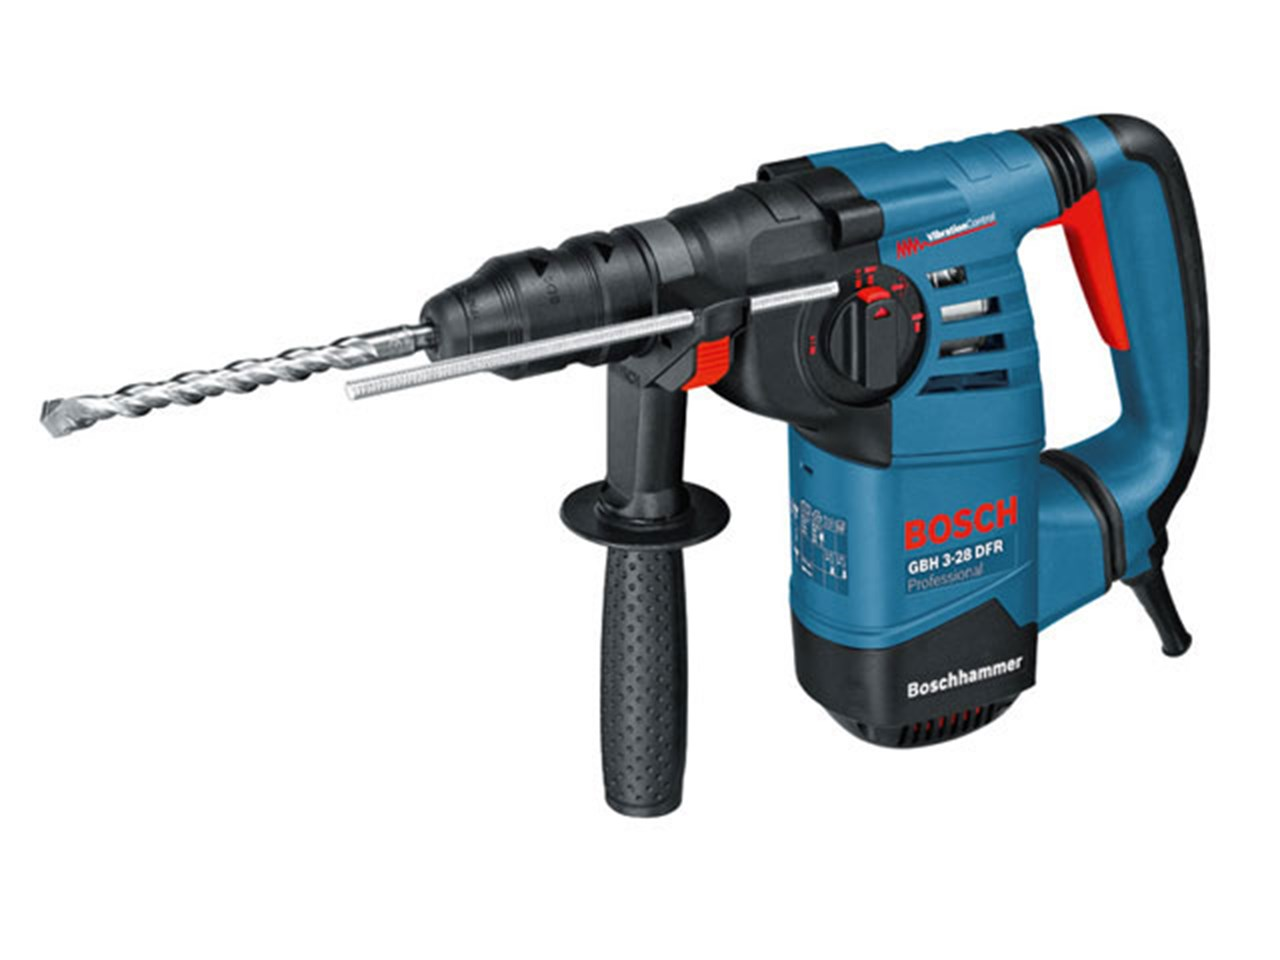 bosch gbh328dfr sds plus 3kg rotary hammer drill 240v 800w. Black Bedroom Furniture Sets. Home Design Ideas